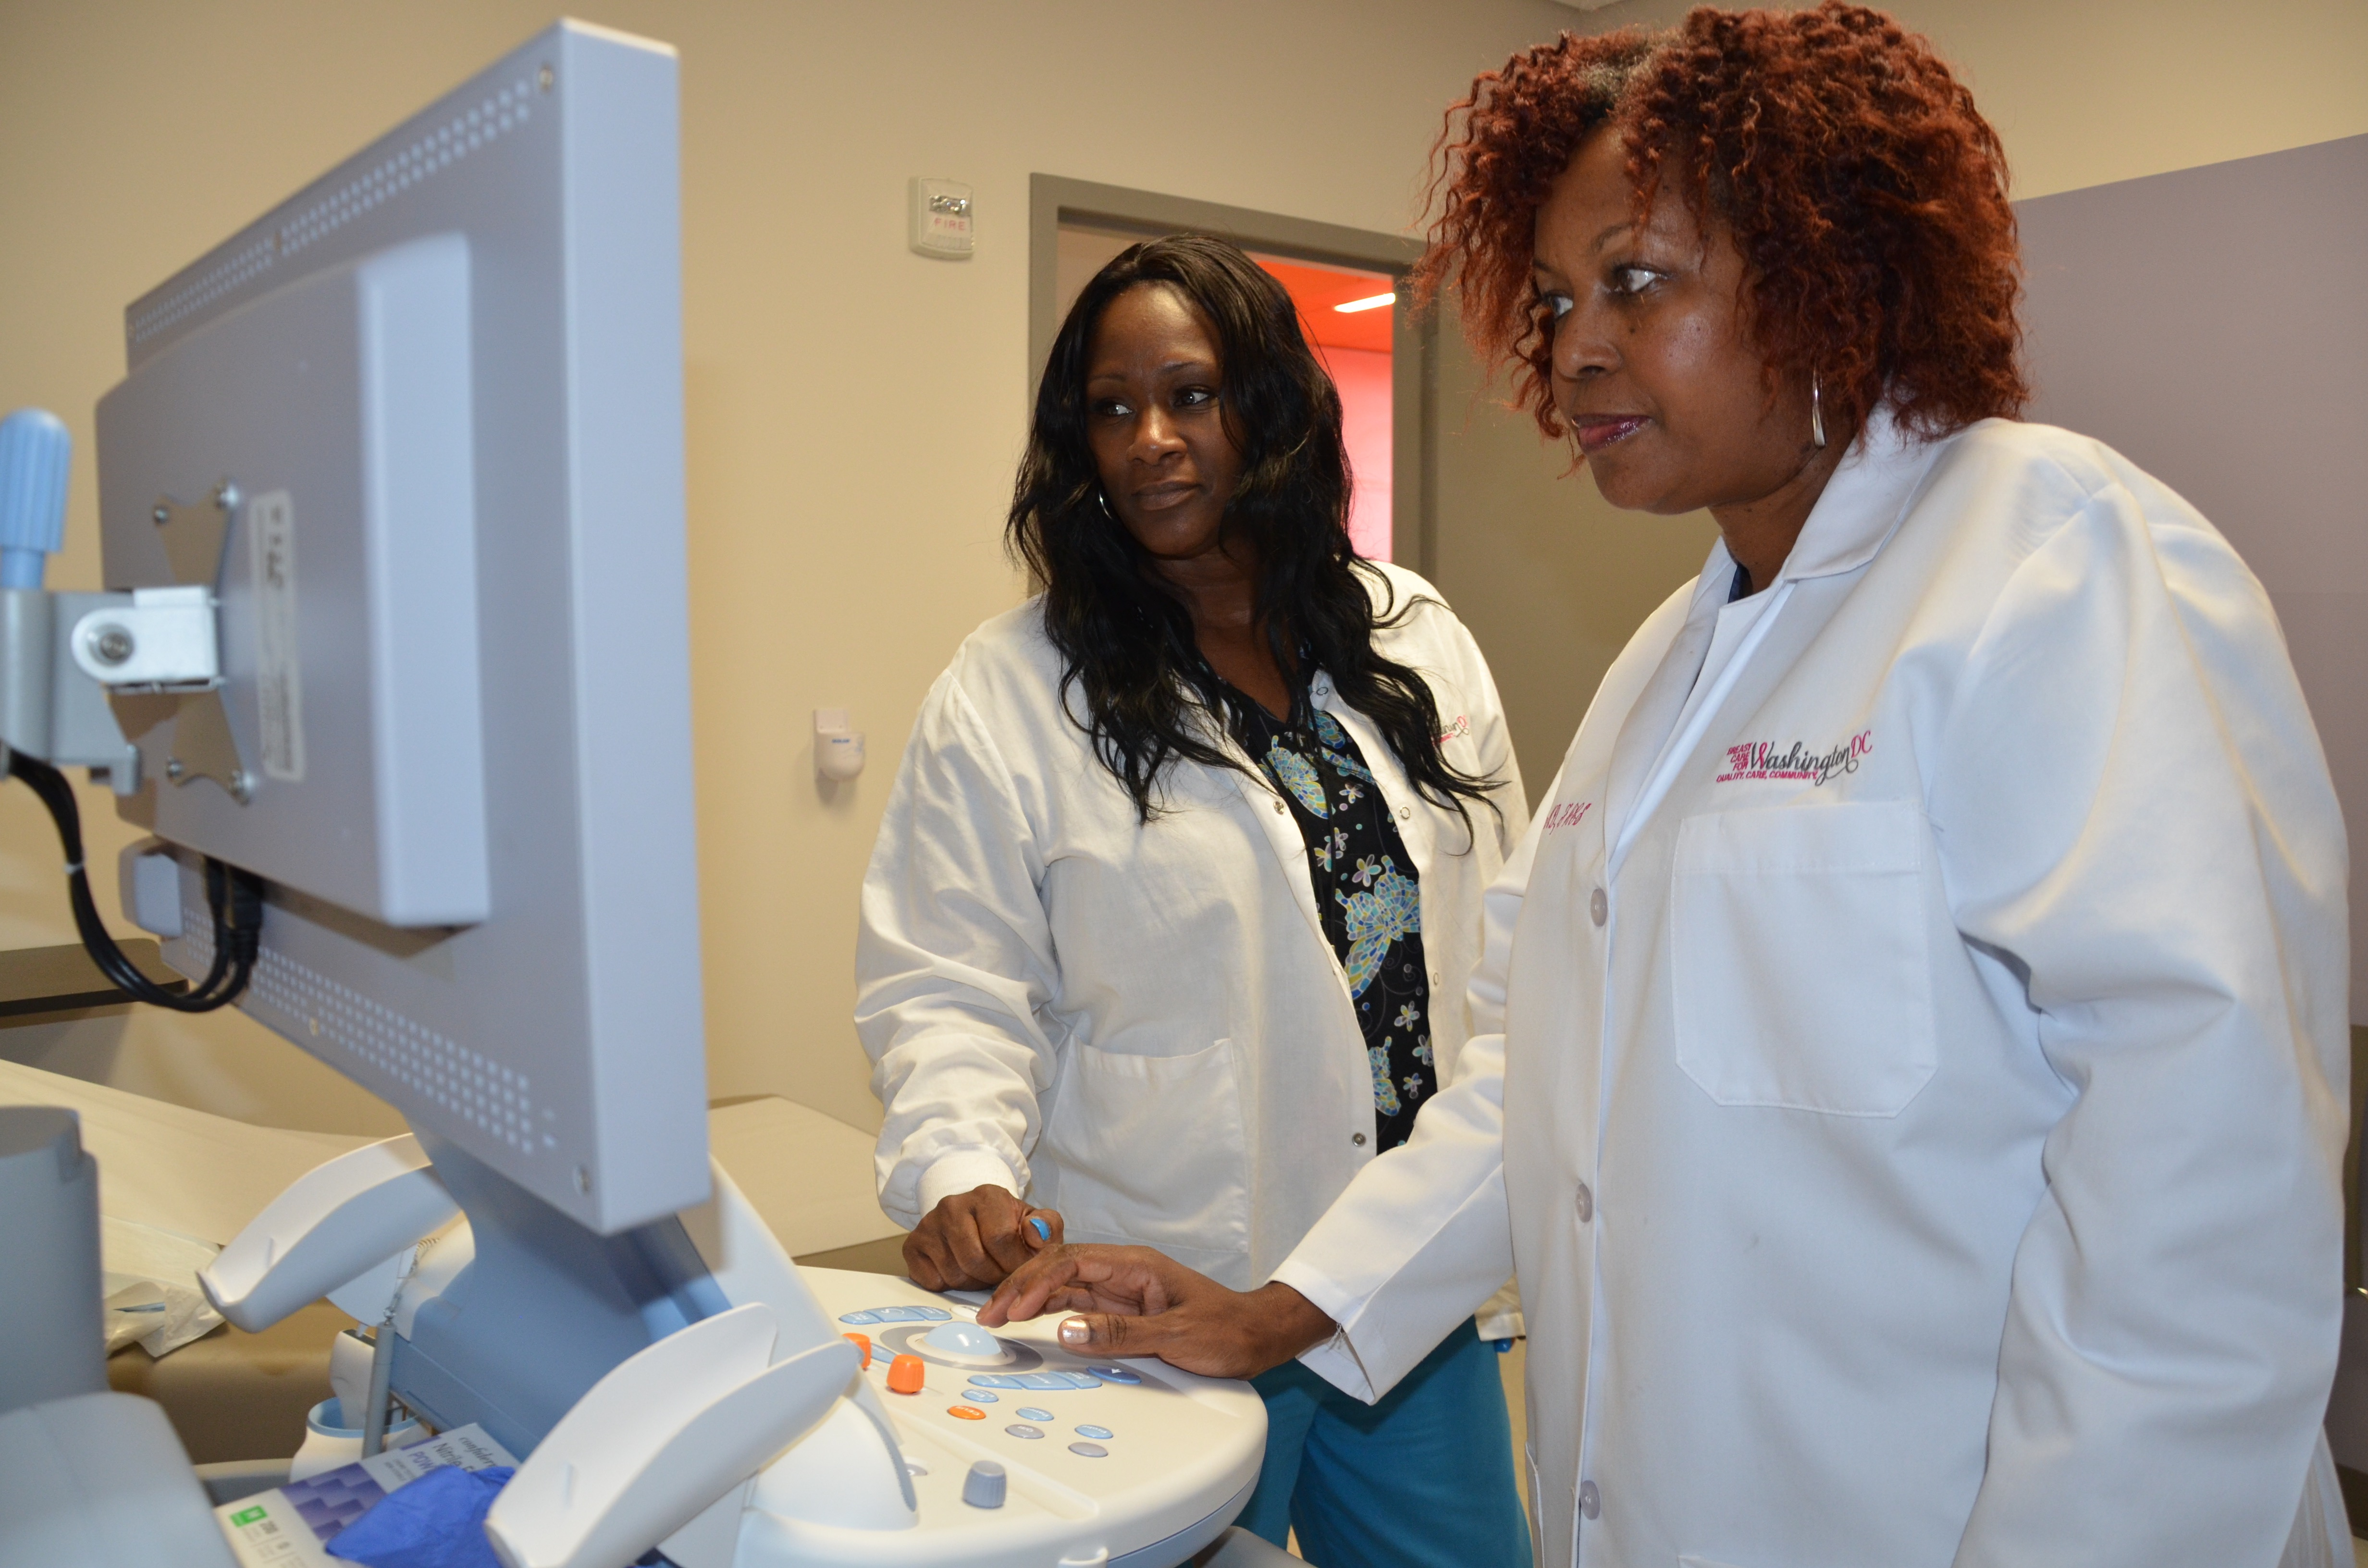 Two black female medical providers reading a screen on a medical device